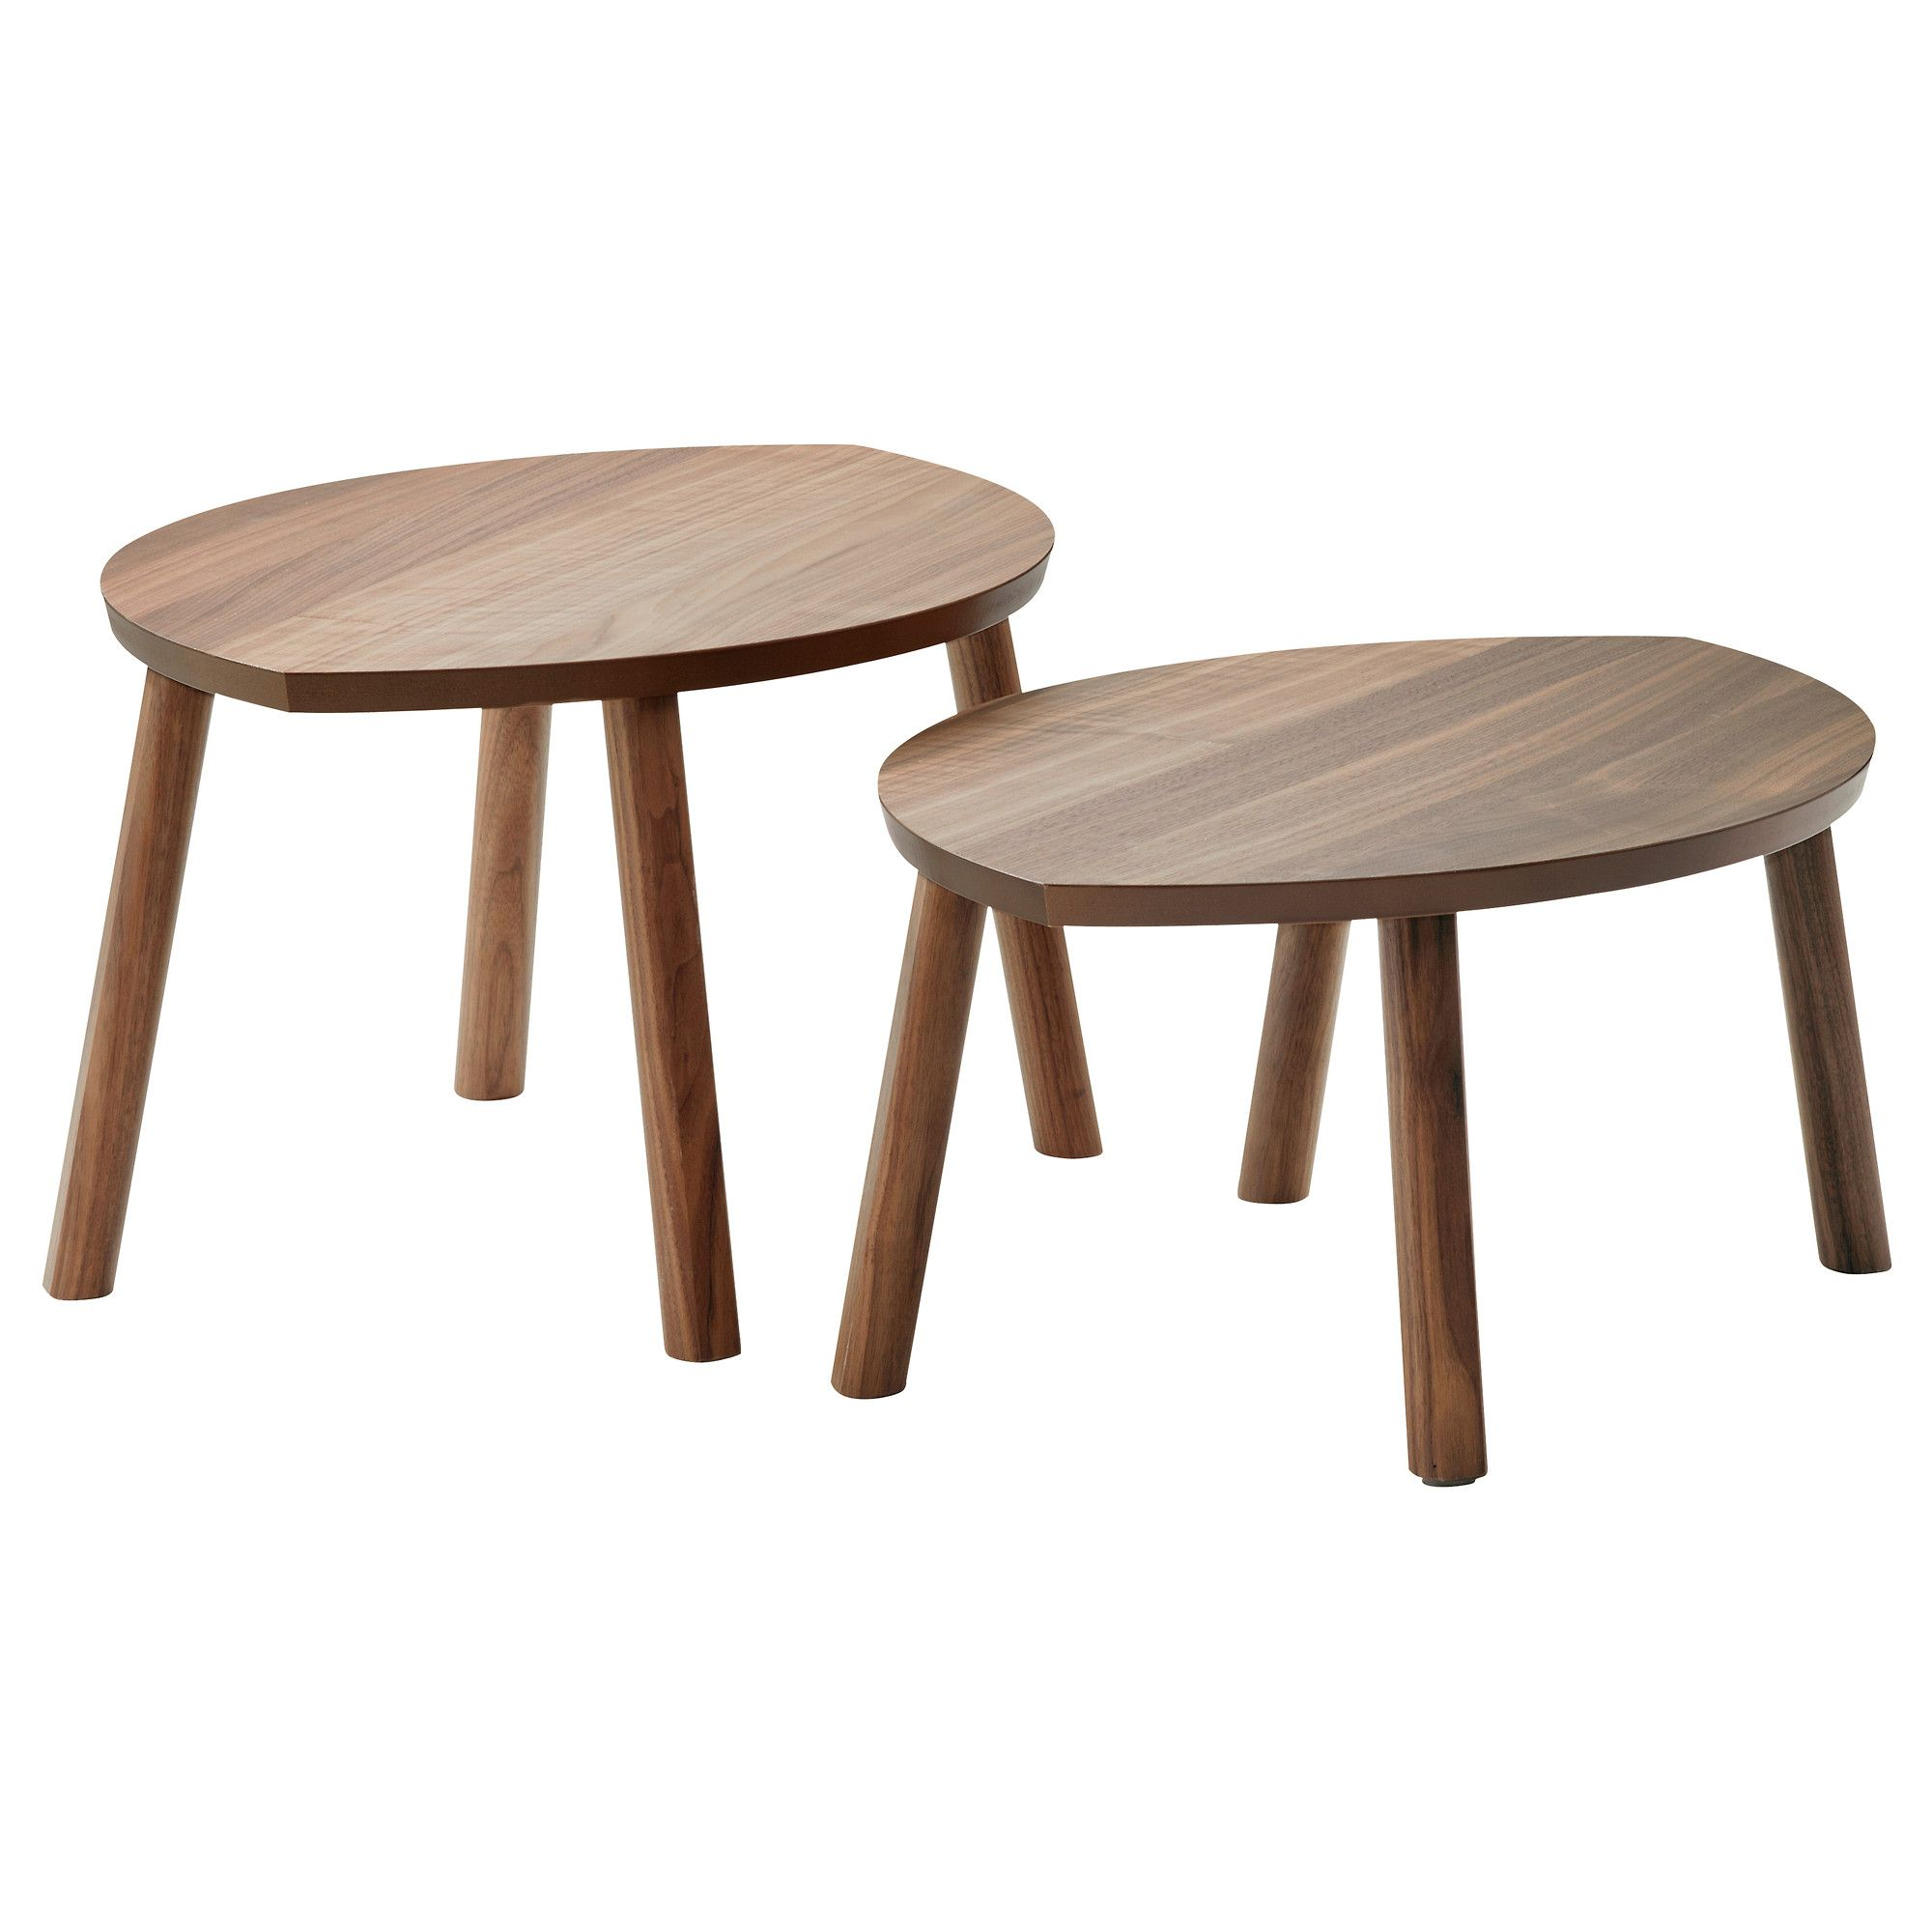 Couchtisch Ikea Stockholm Stockholm Nesting Tables Set Of 2 Walnut Veneer Dobbs Living